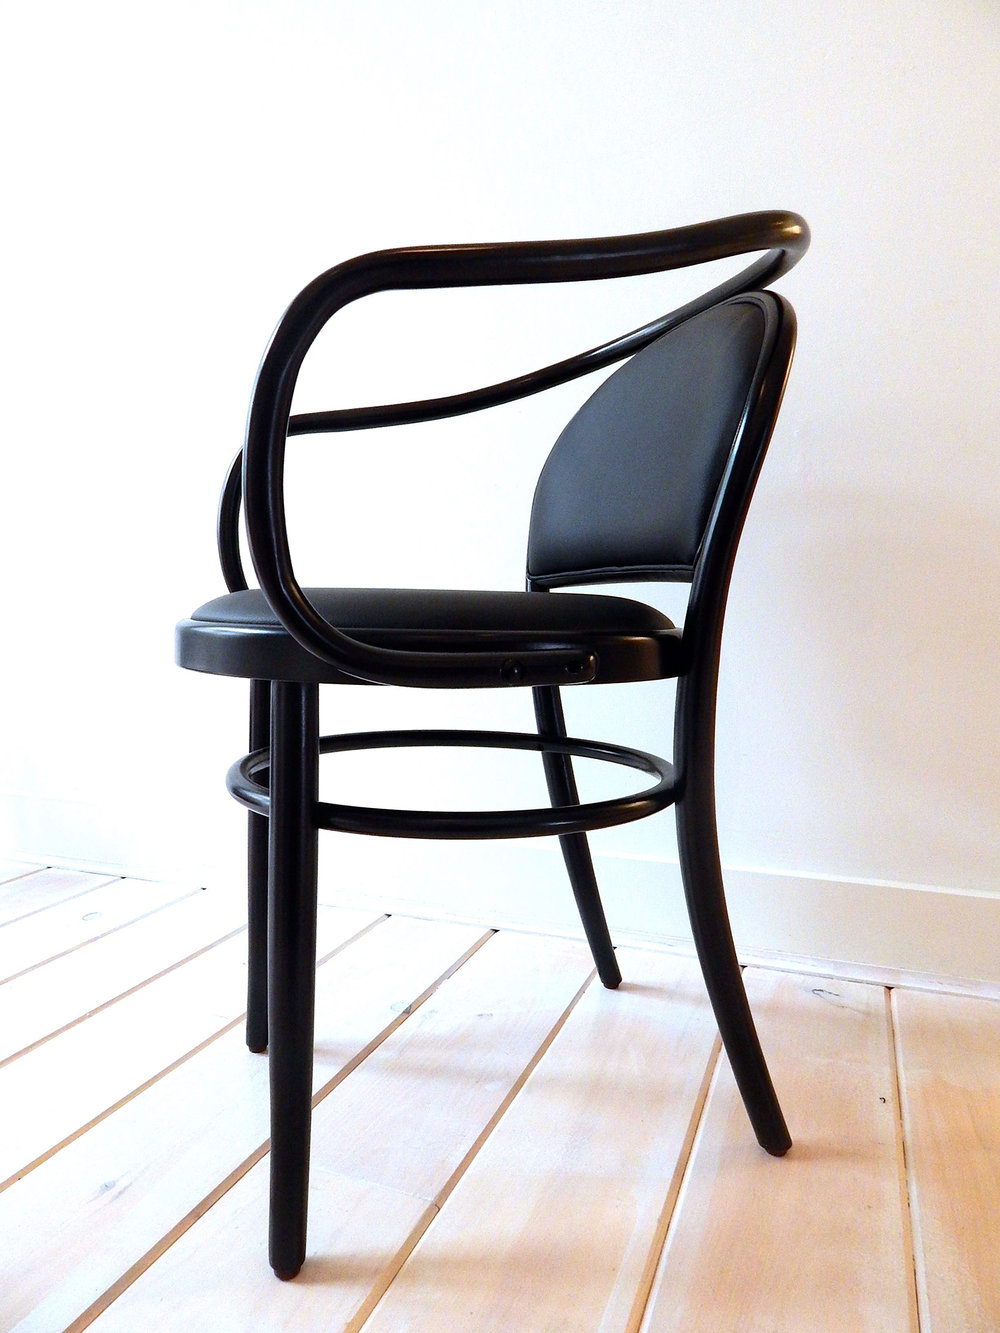 Considered An Icon, The Era Is One Of The Most Reproduced Furniture Pieces  In The World. Also Known As The Bistro Chair, It Has Been Used For Over 150  Years ...